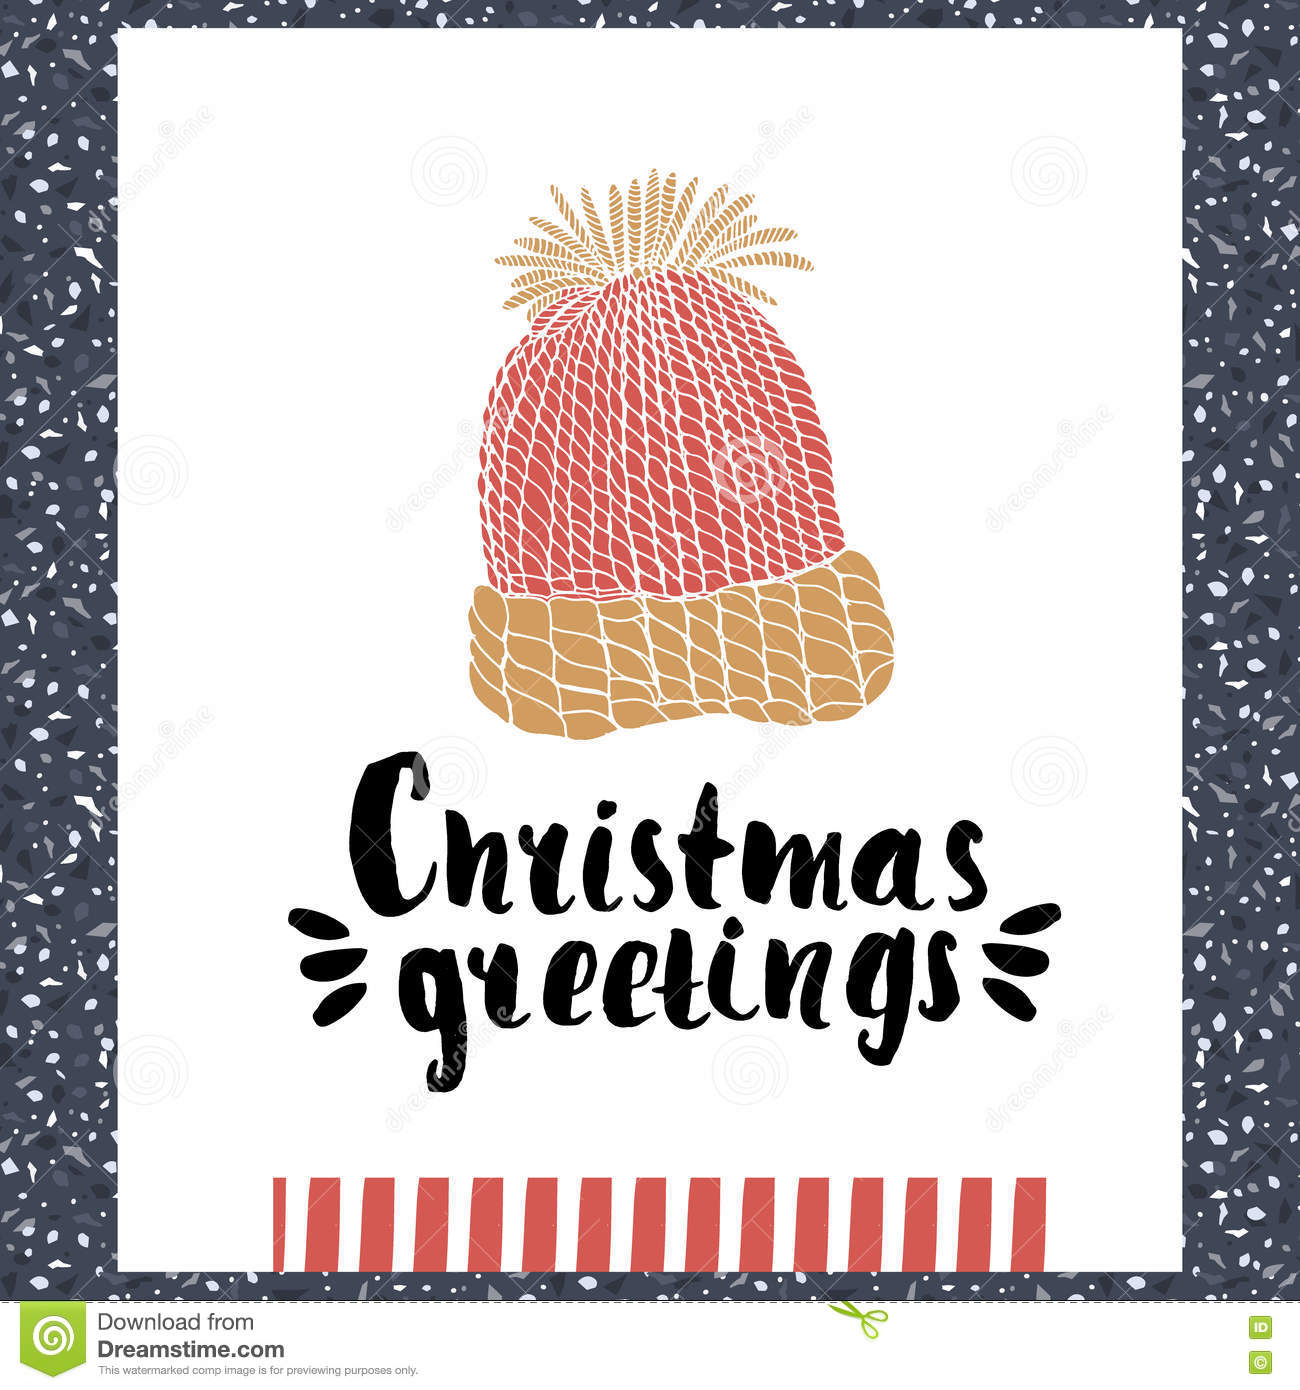 Christmas Greeting Holiday Unique Handwritten Lettering Made With